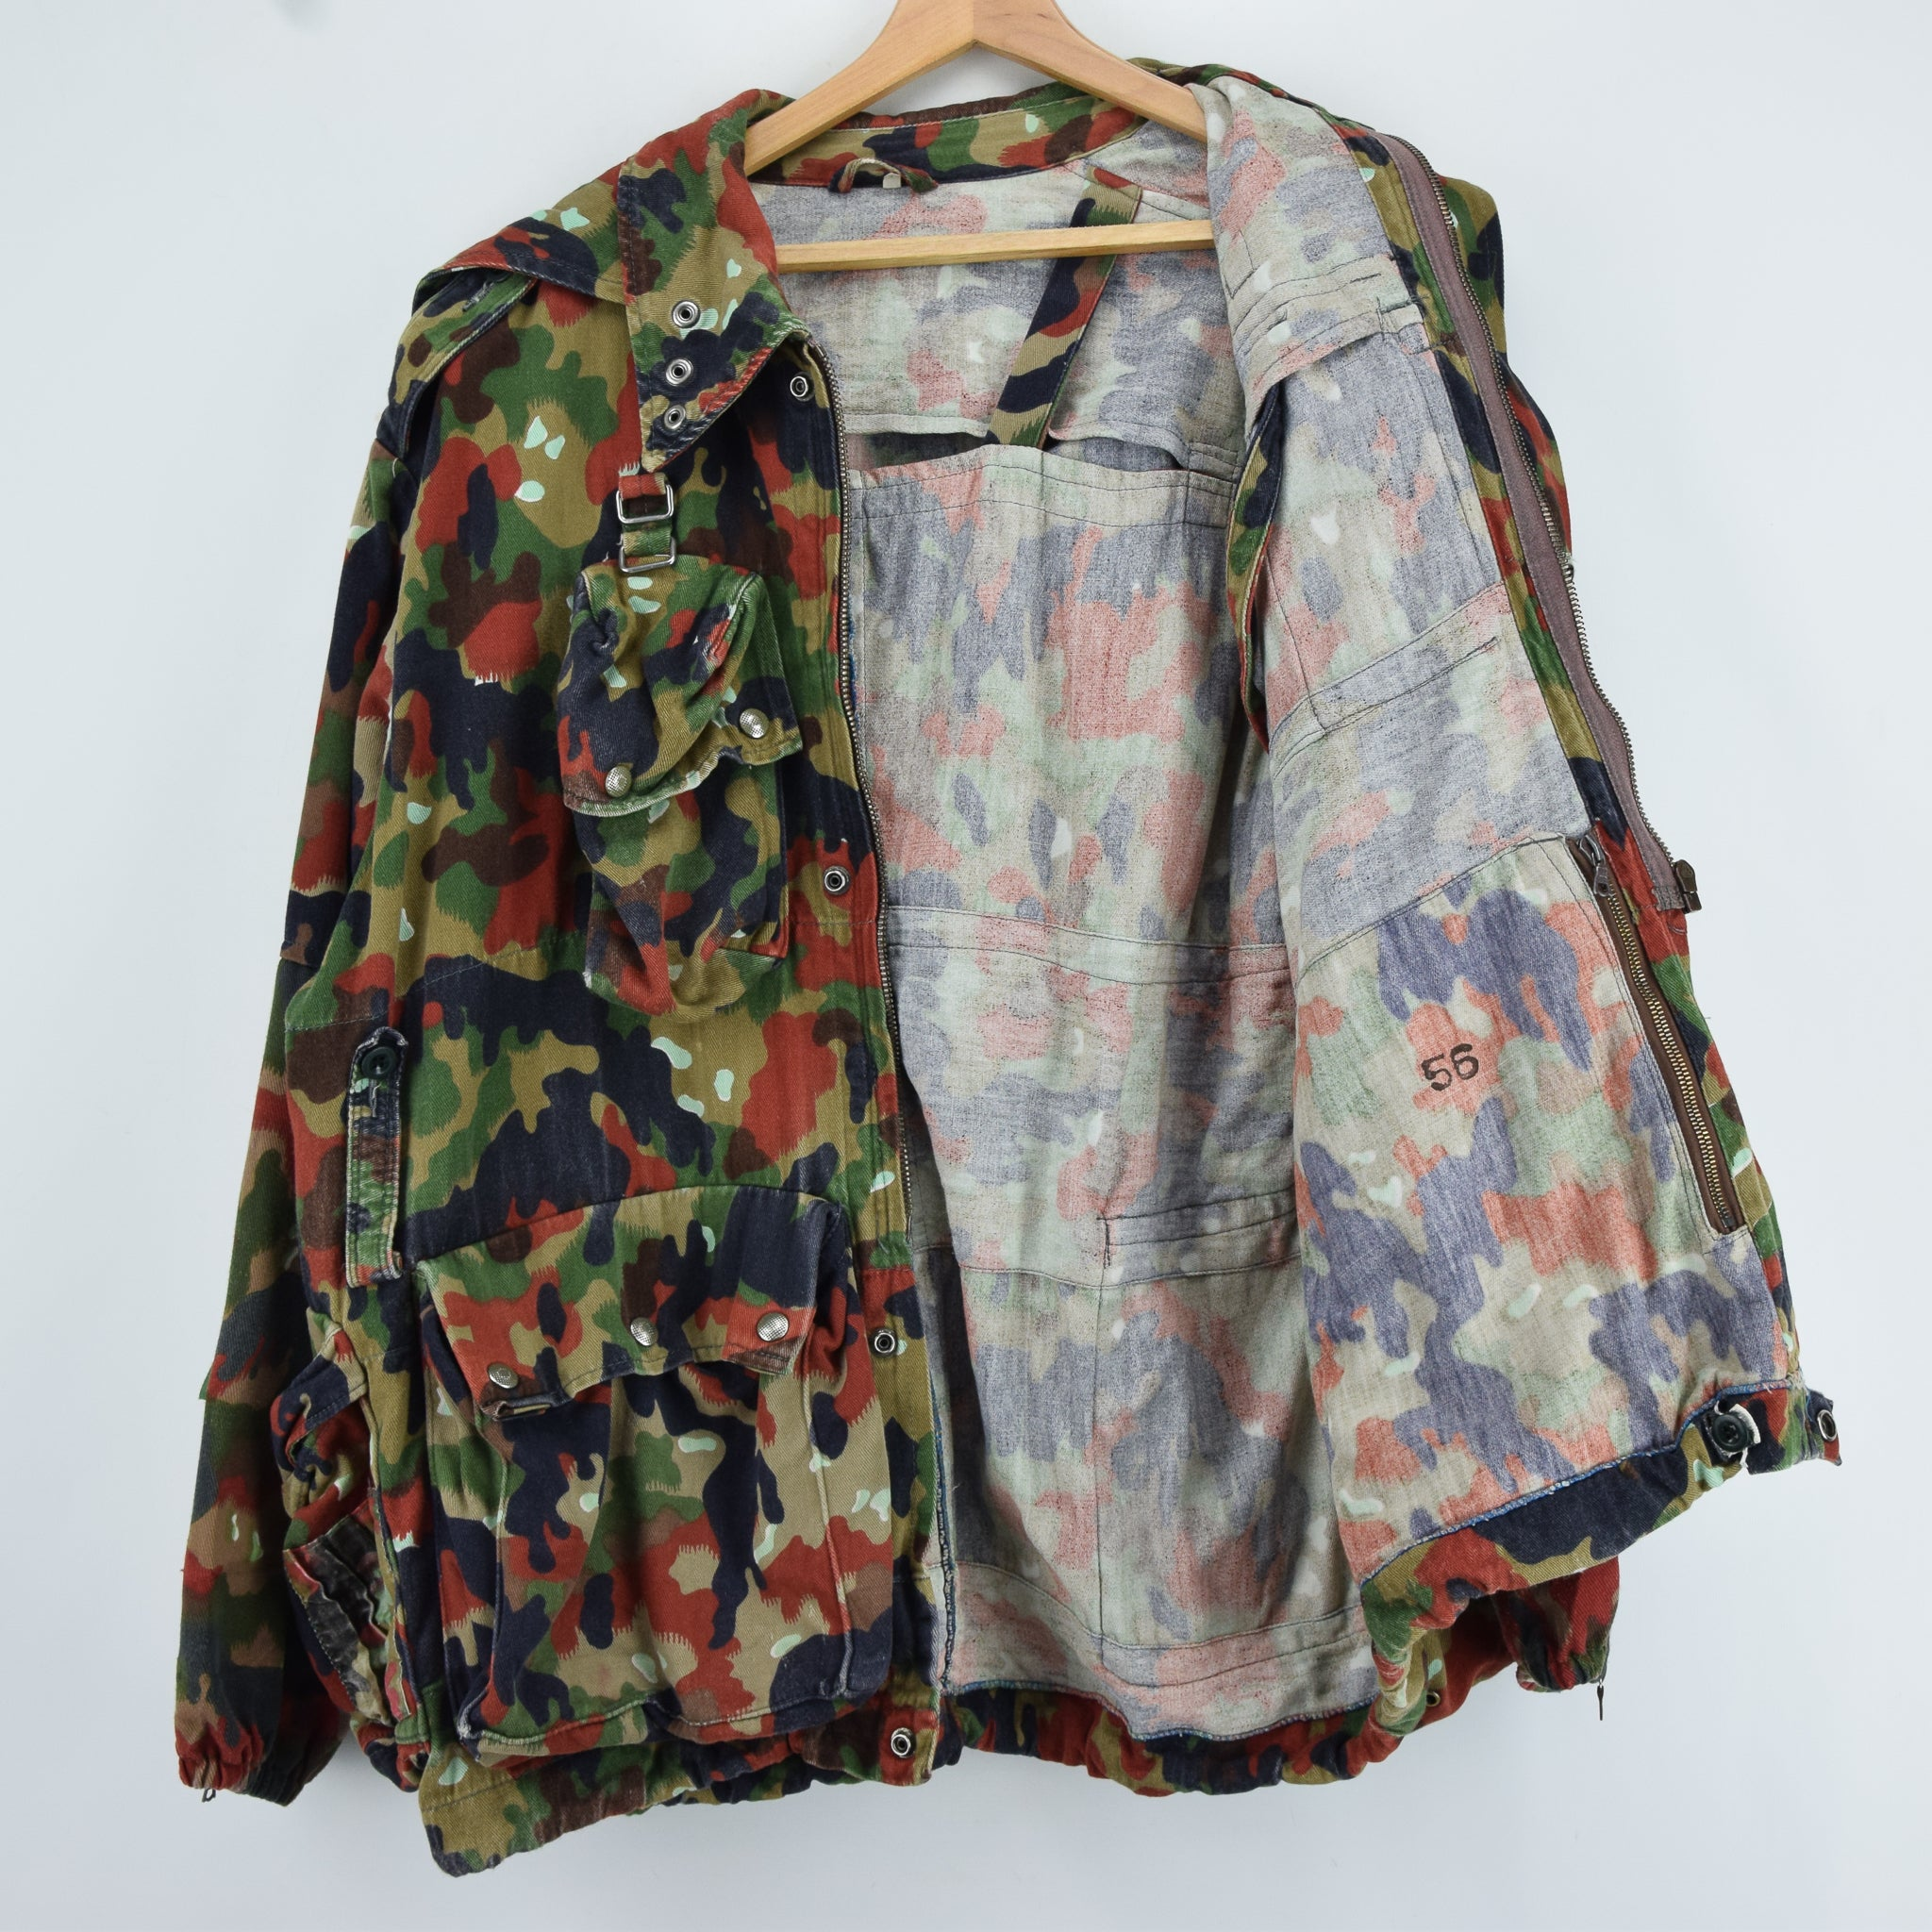 795779d8e9e20 ... Vintage 80s Swiss Army Alpenflage Camo Sniper Combat Field Jacket XL  lining ...